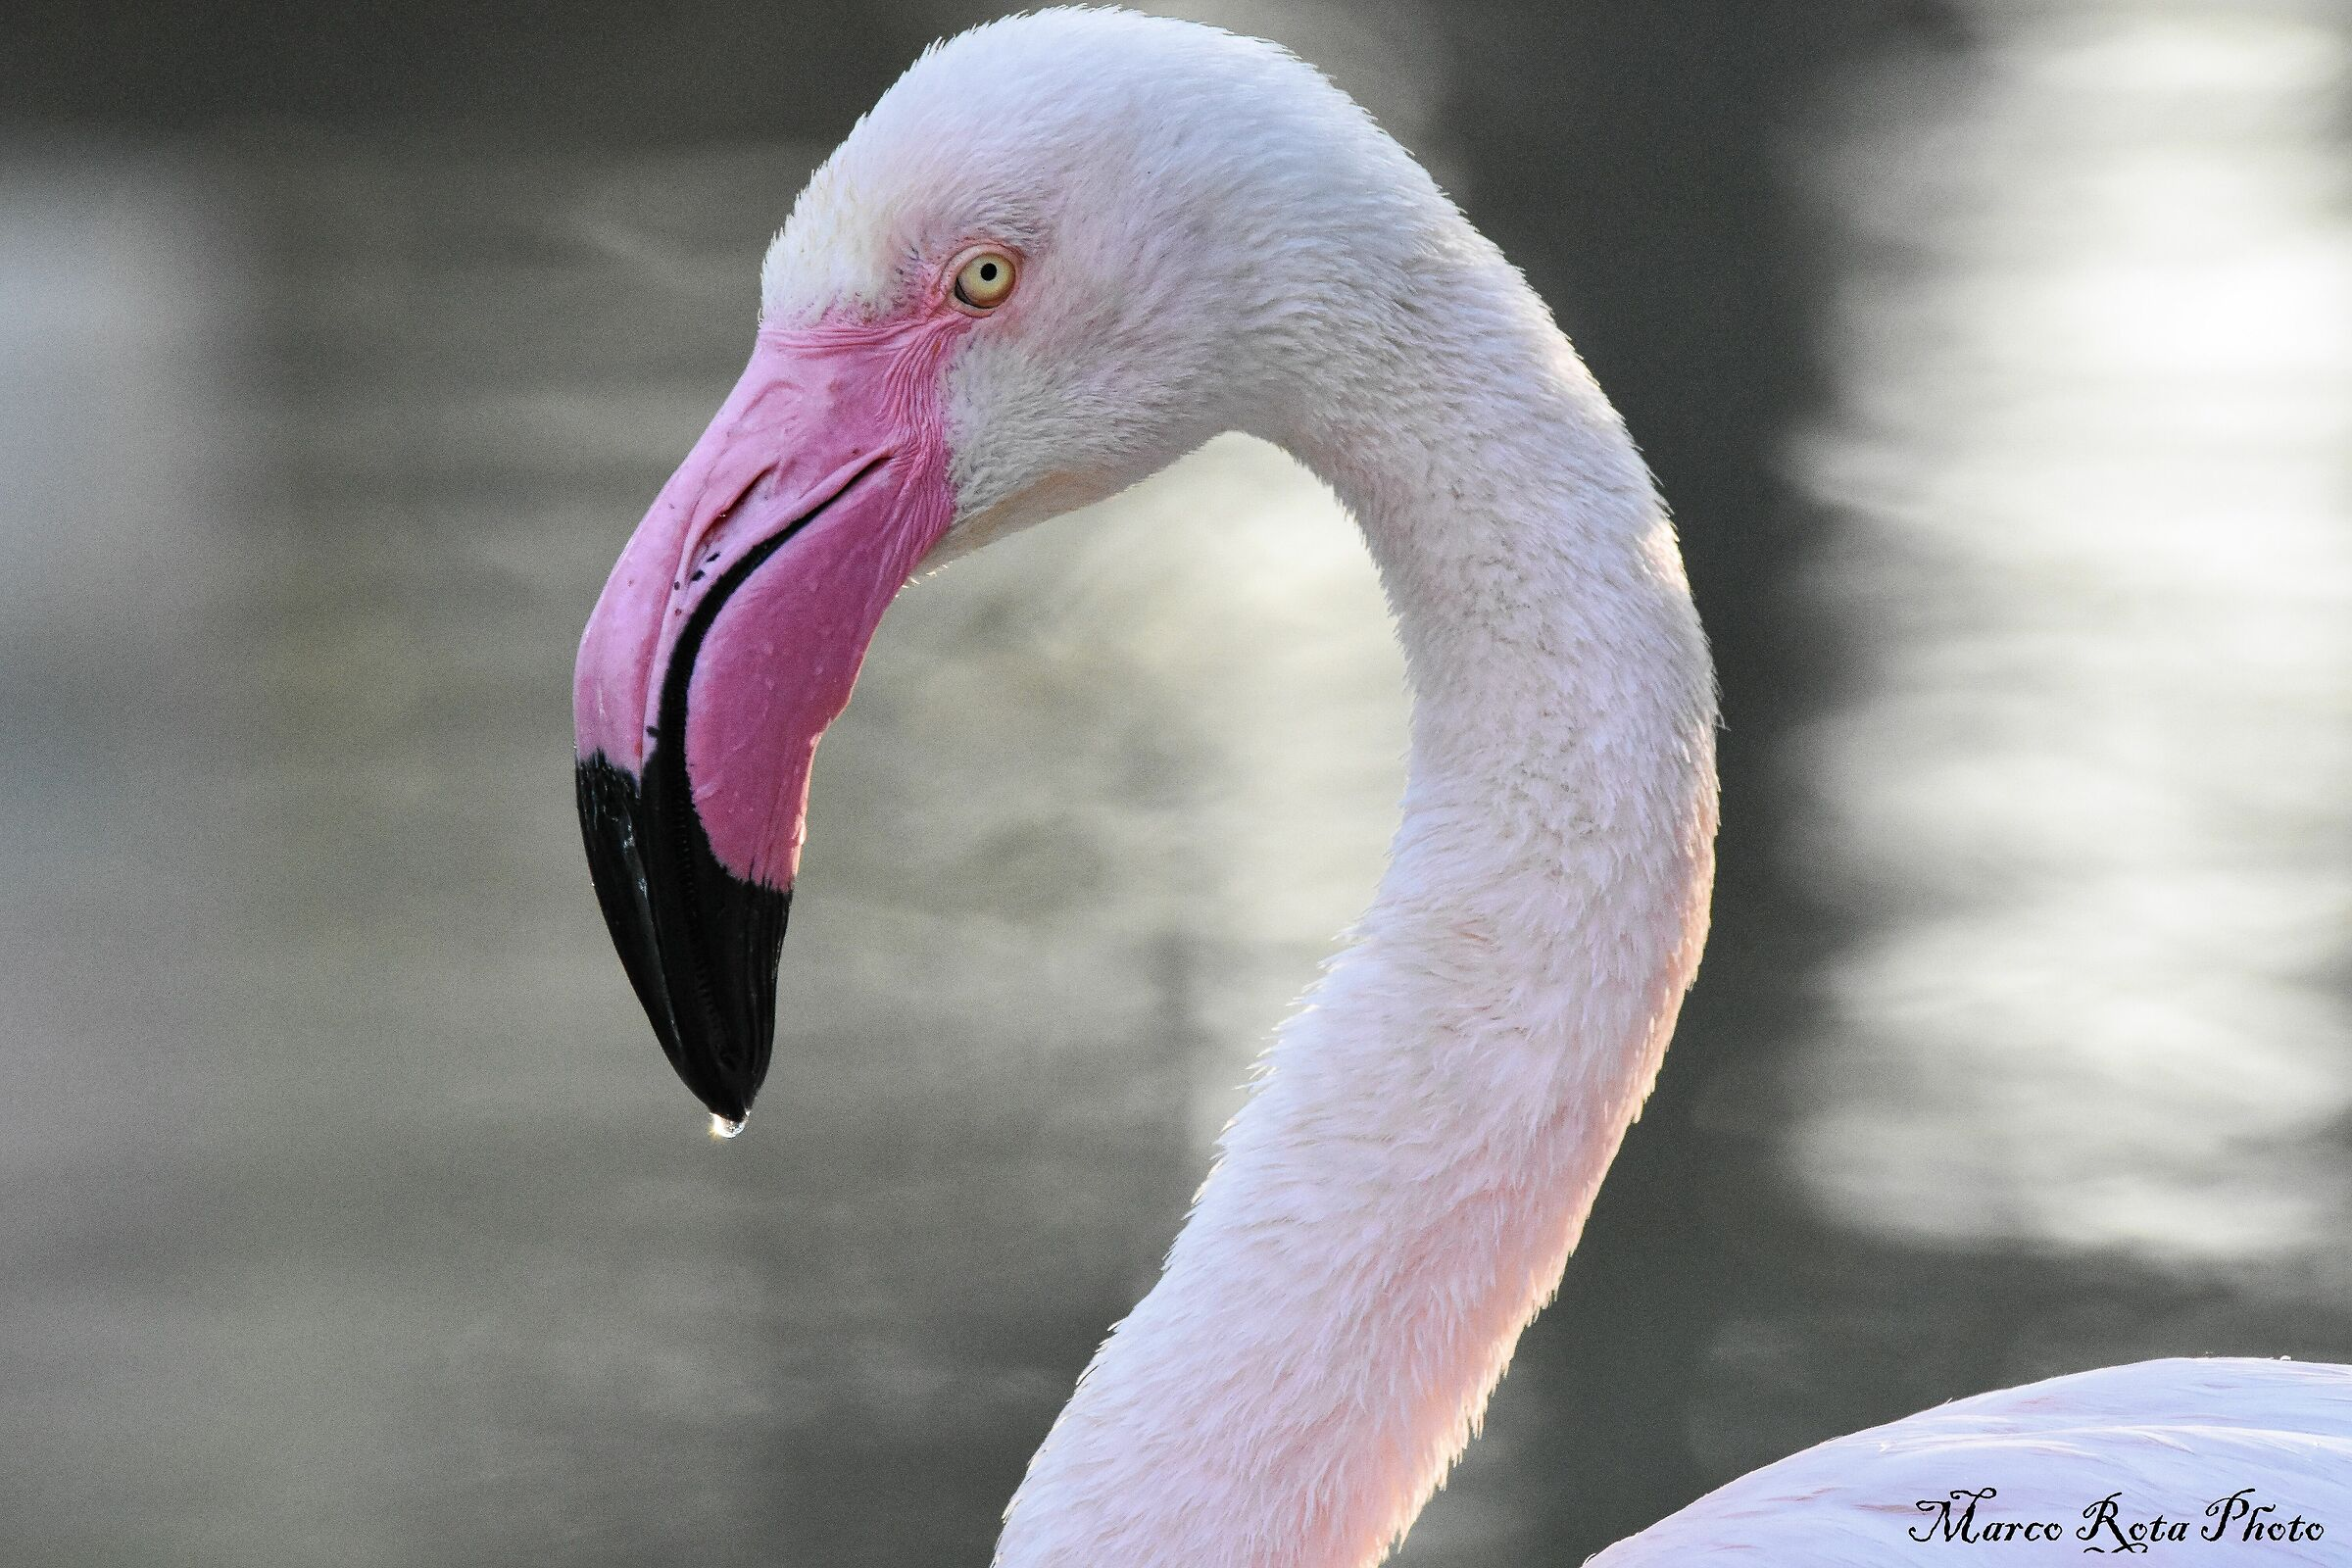 Flamingo with the drop to the nose....